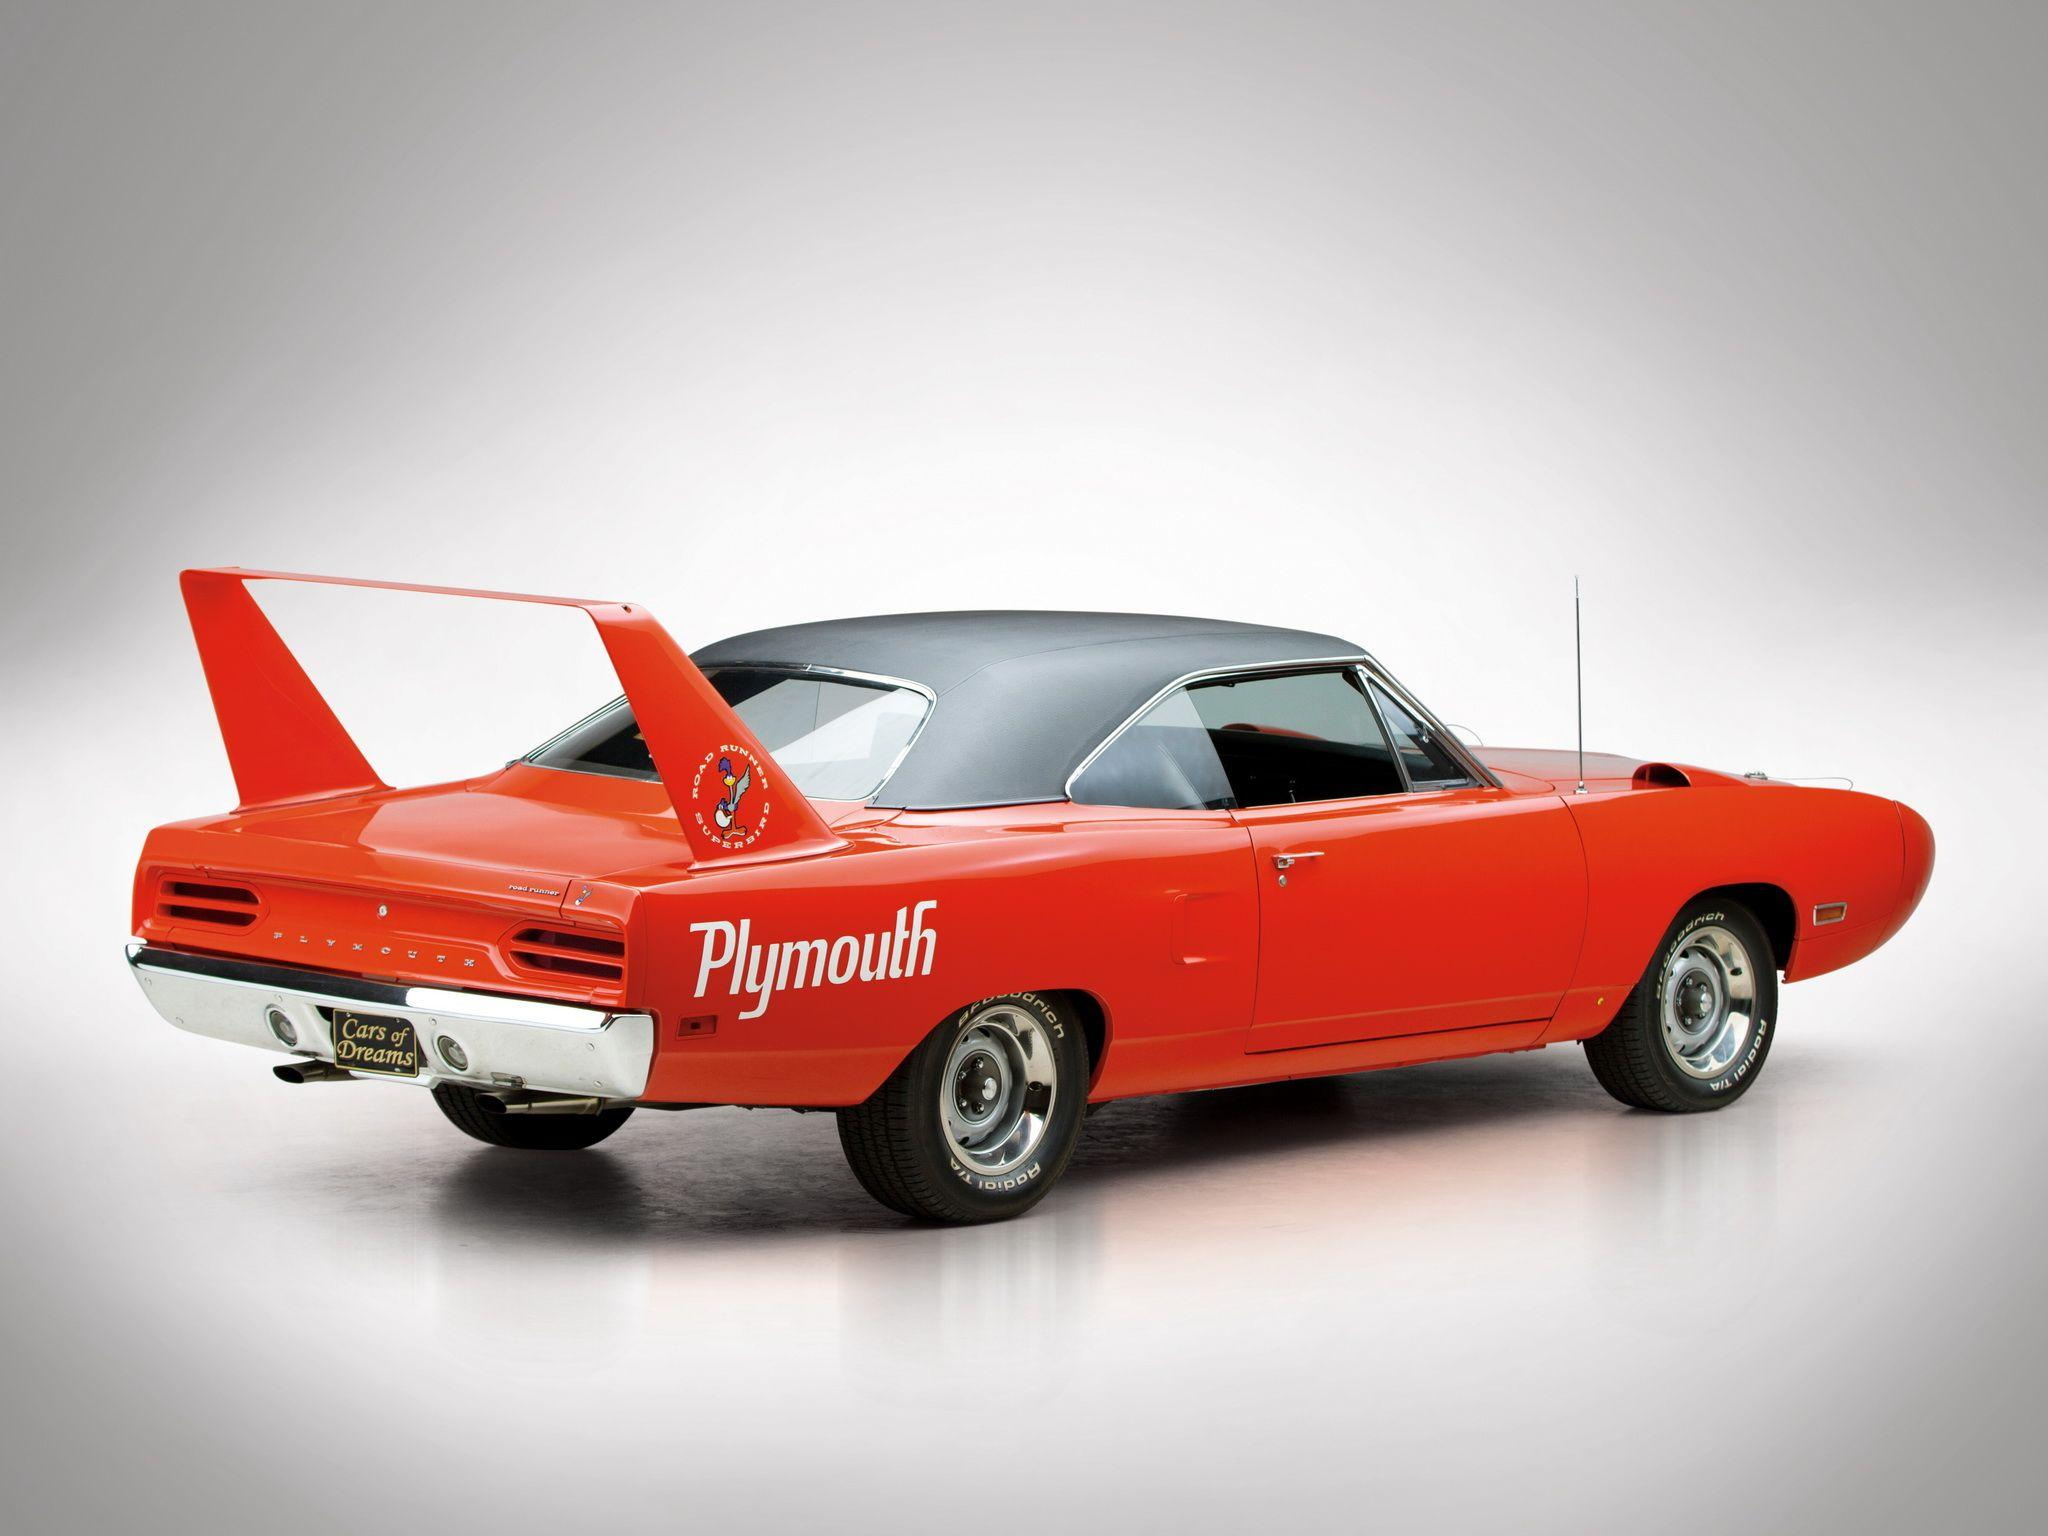 Road Runner Wallpaper | HD Wallpapers | Pinterest | Plymouth road ...